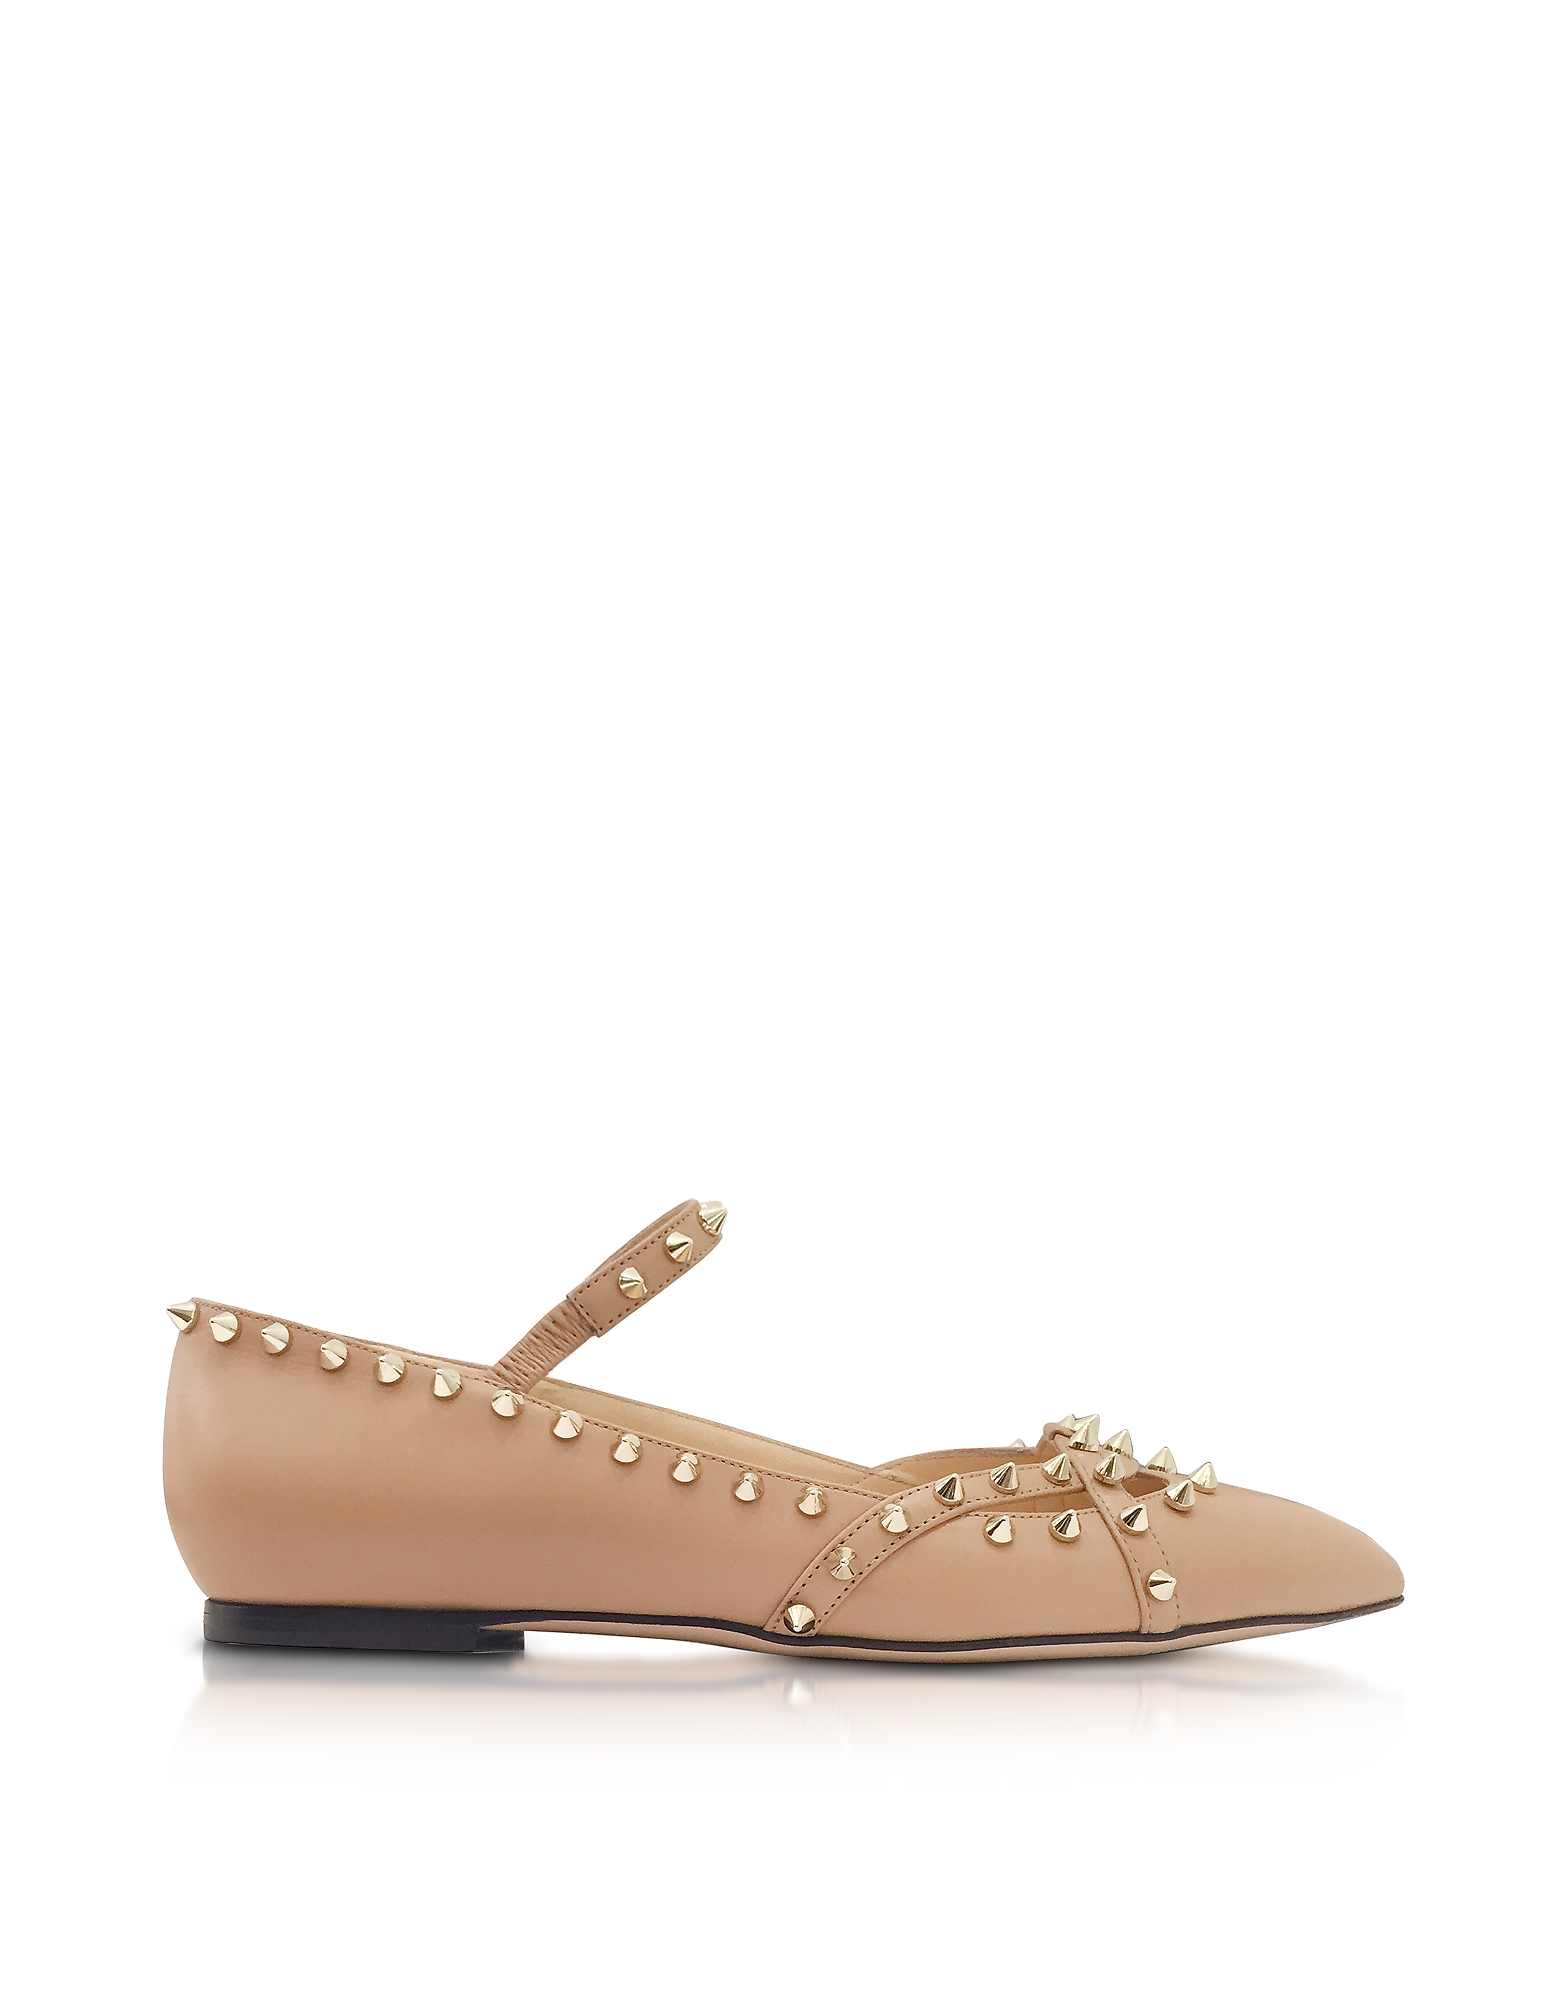 Charlotte Olympia Shoes, Kensington Nude Leather Flat